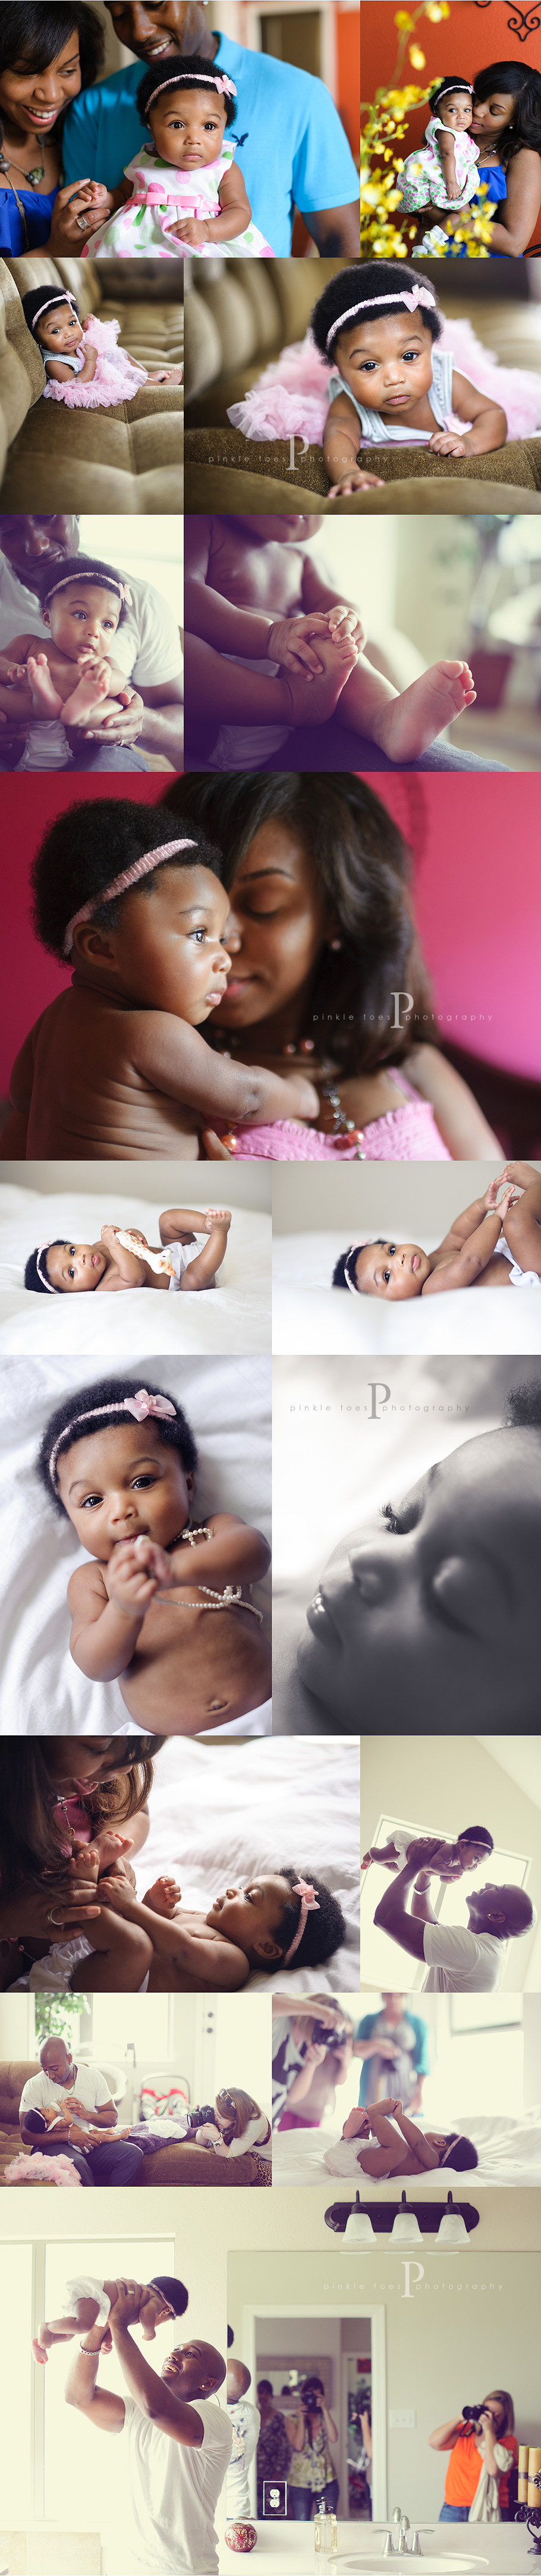 l-austin-baby-family-lifestyle-photographer-workshop.jpg